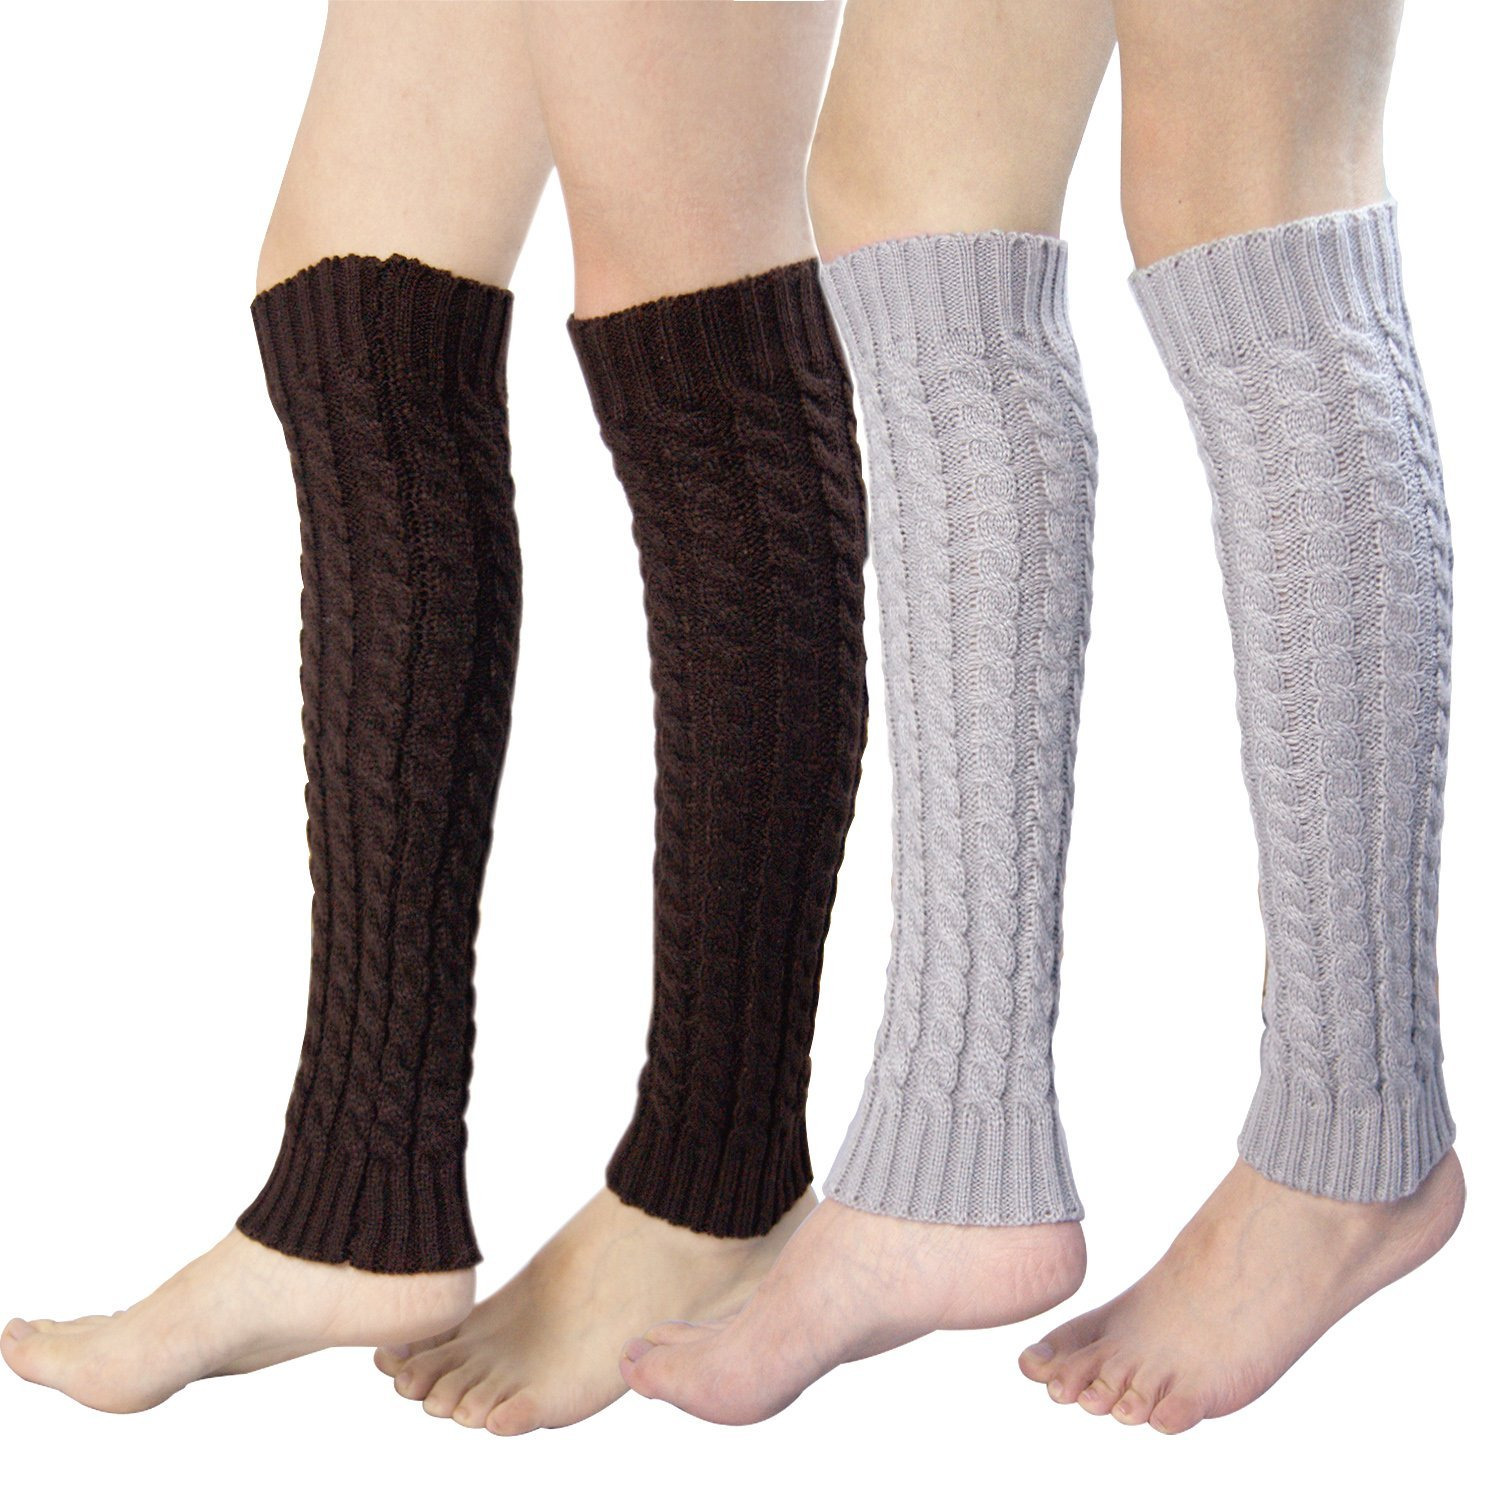 Cheap Knitted Leg Warmers Pattern Free Find Knitted Leg Warmers